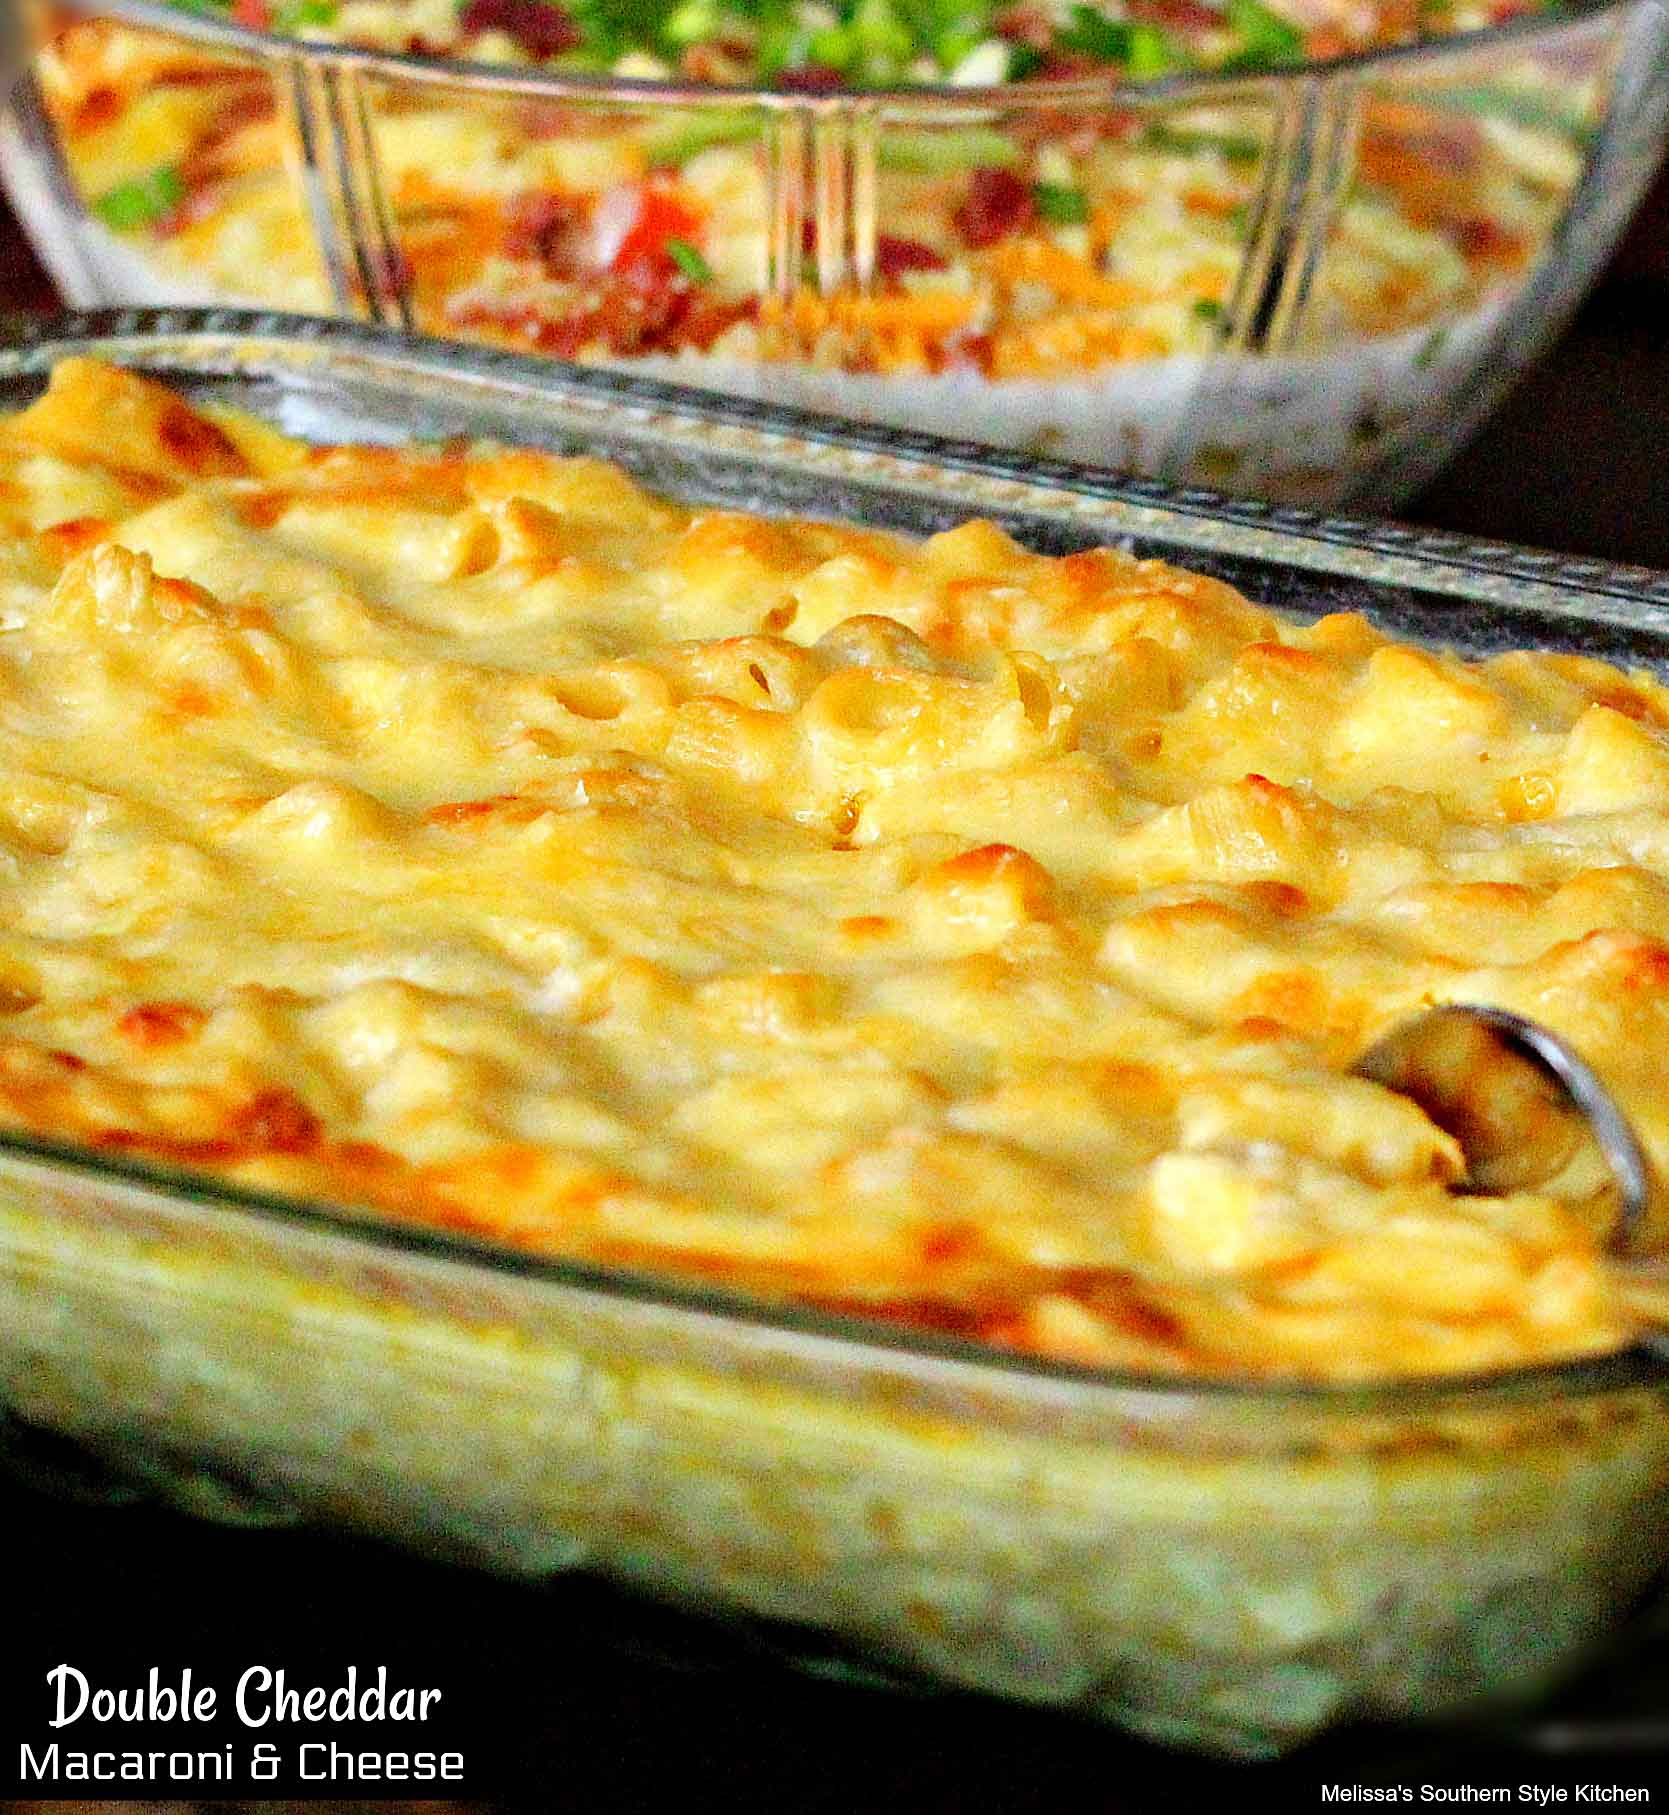 Double Cheddar Macaroni and Cheese